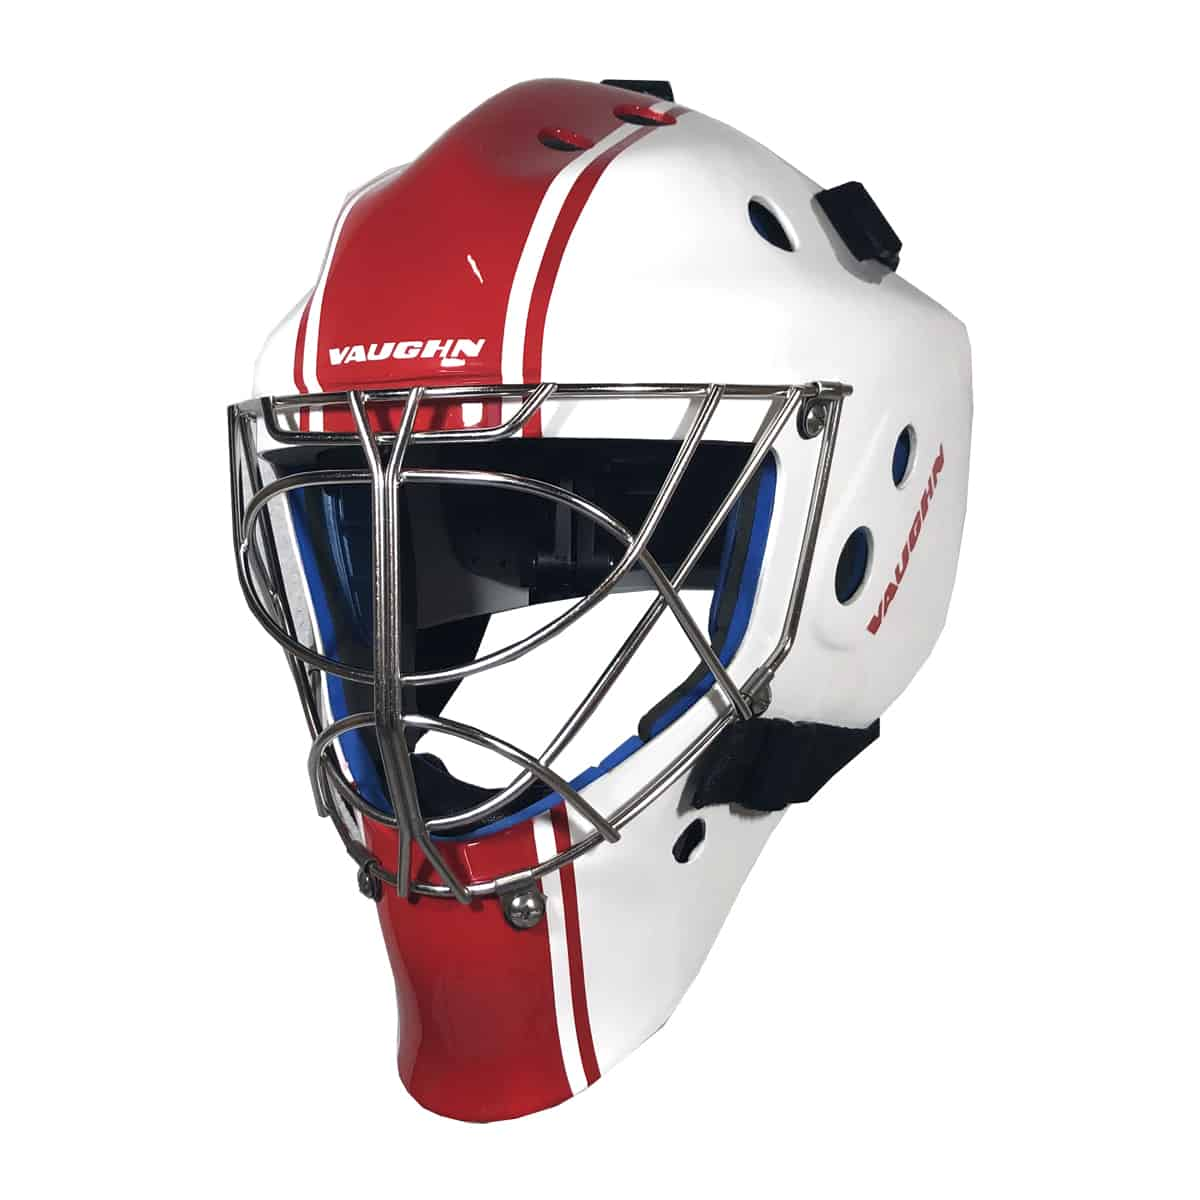 fda90647cfd Vaughn VM 2300 Senior Goalie Mask in Red and White